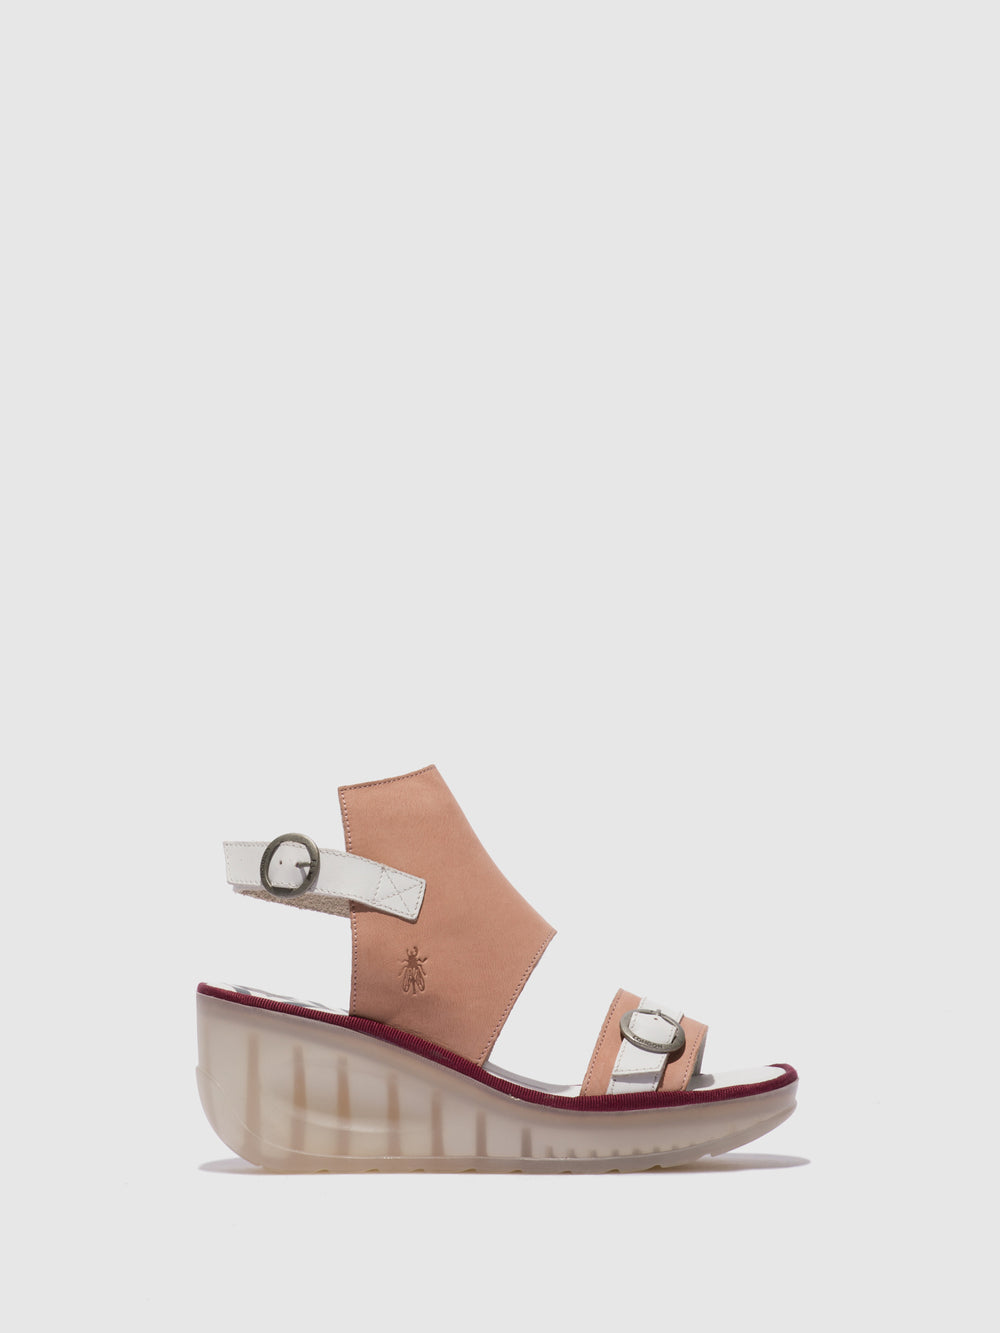 Ankle Strap Sandals JENO104FLY NUDE PINK/OFFWHITE